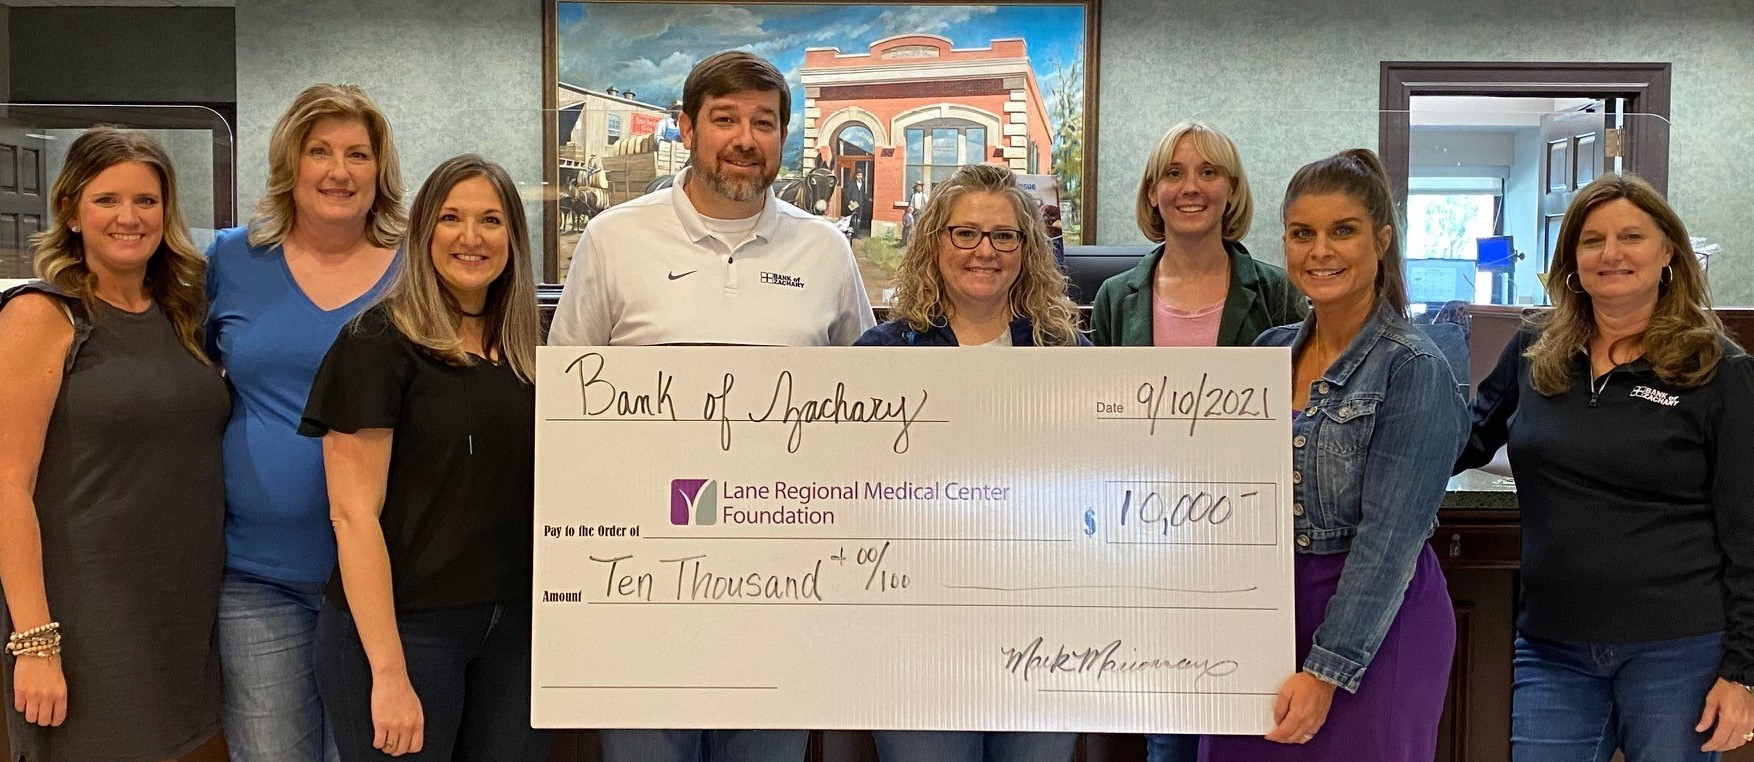 Bank of Zachary Gives to Local Hospital Heroes